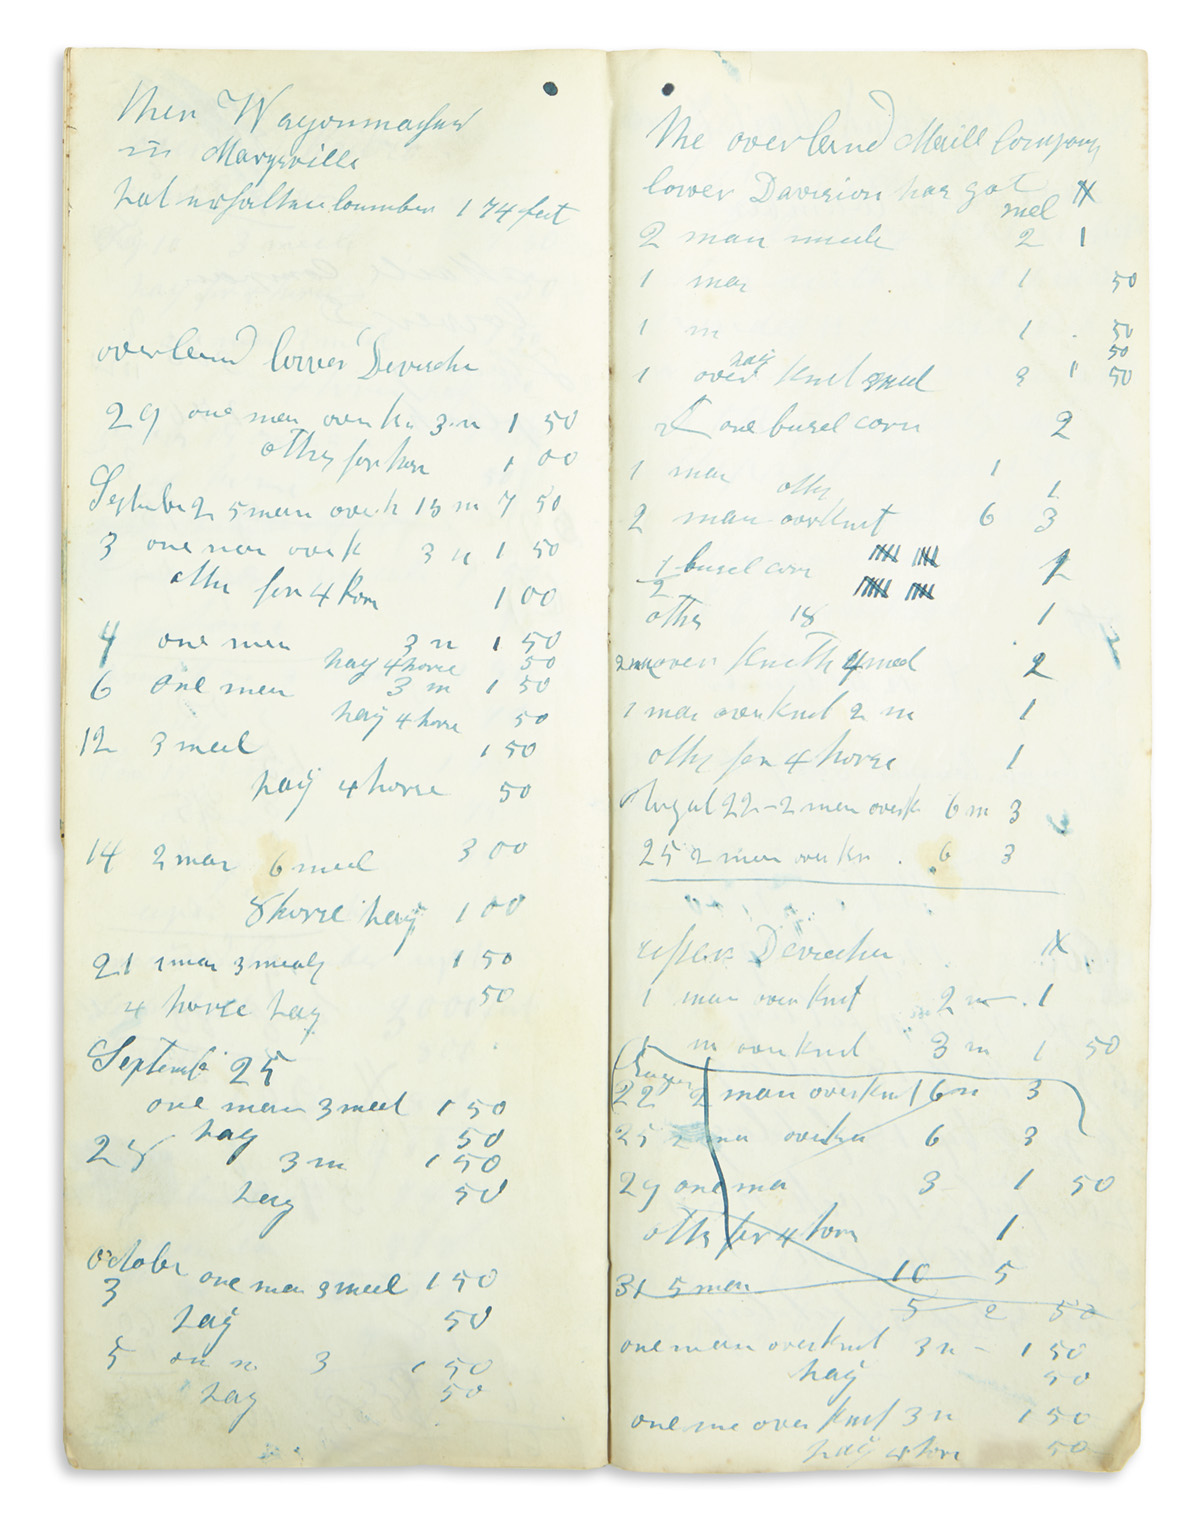 (WEST.) Account book for the Hollenberg Pony Express Station in Kansas.